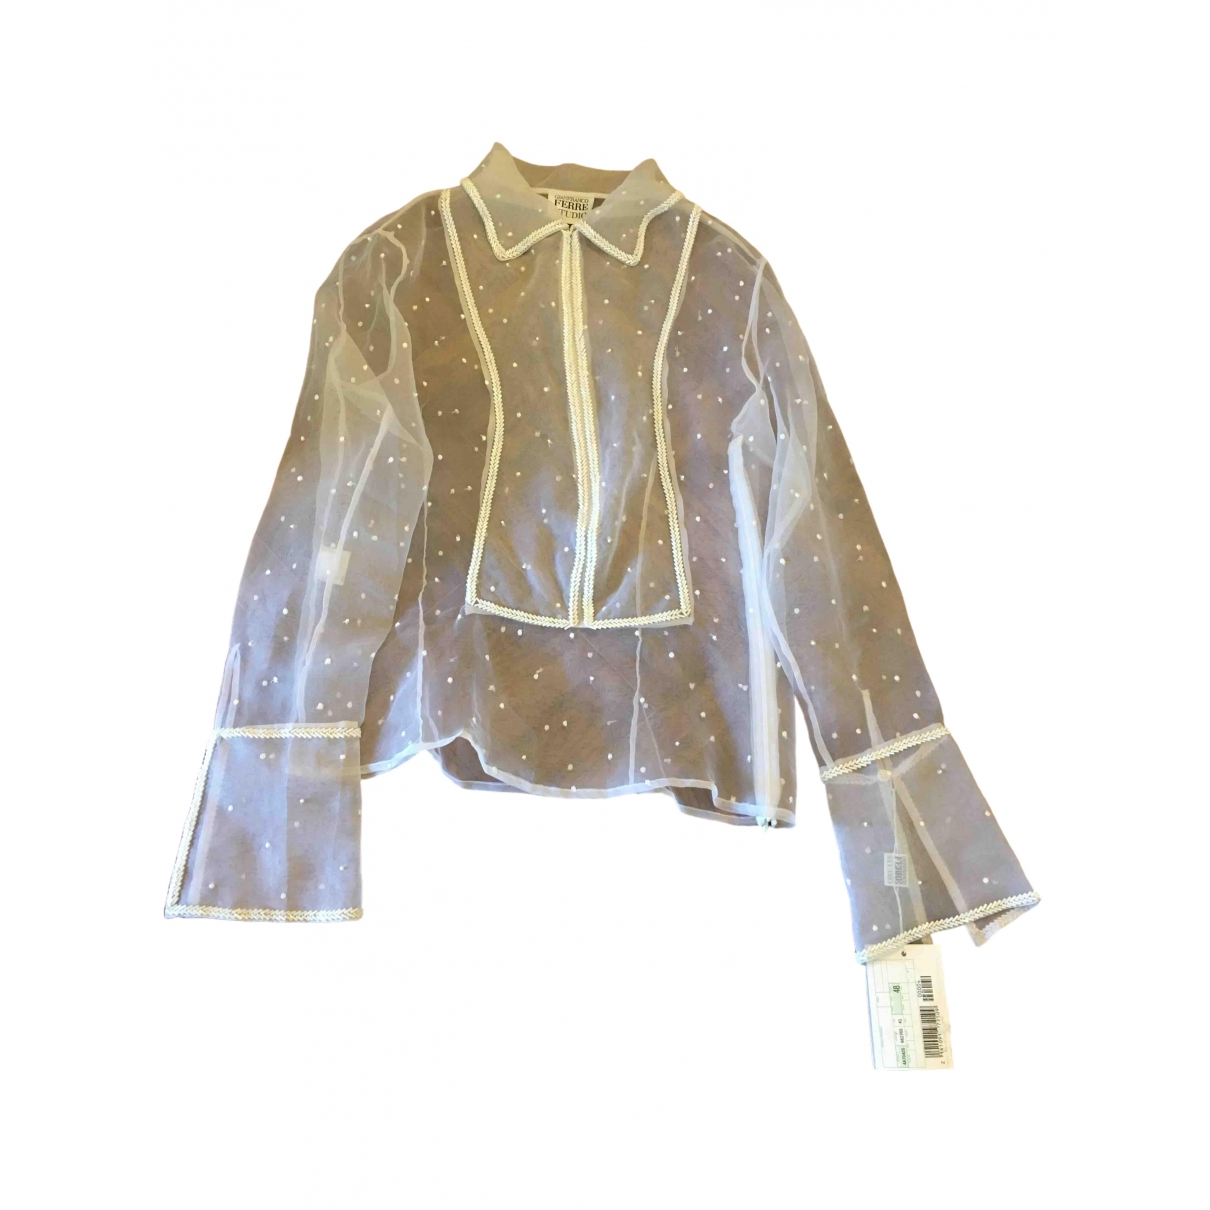 Gianfranco Ferre \N Top in  Weiss Polyester